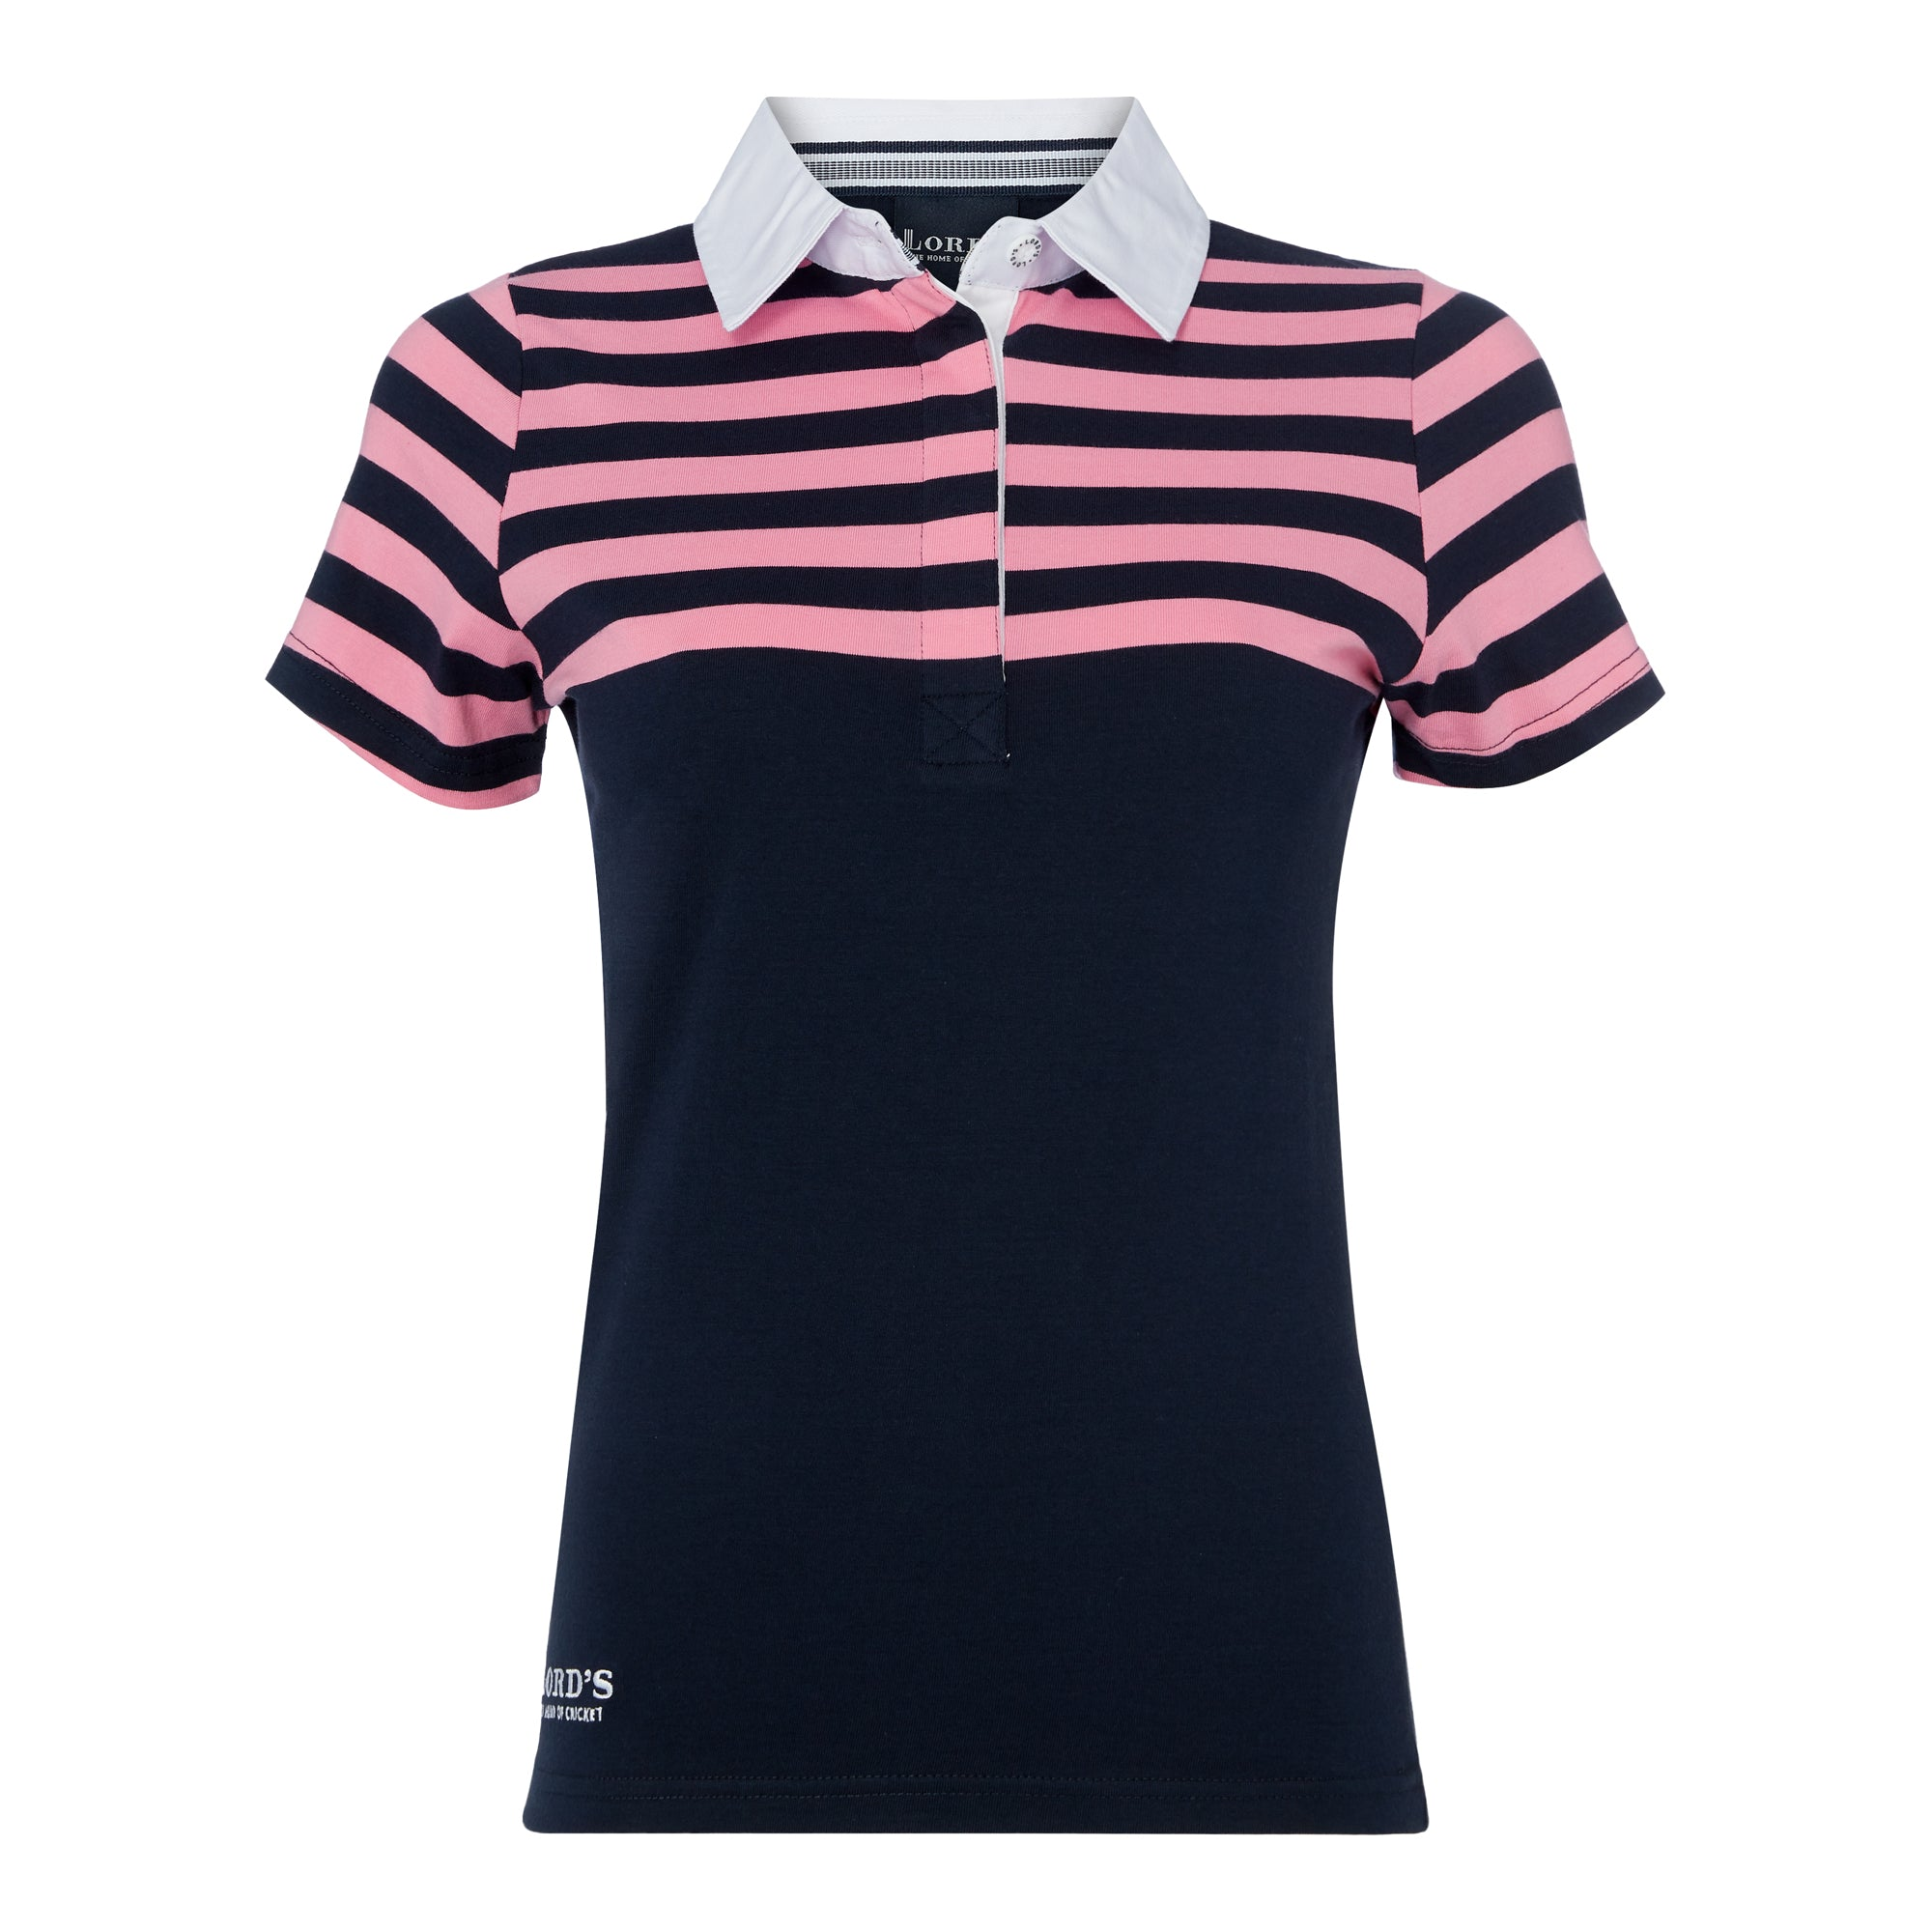 LORD'S NAVY & PINK STRIPED POLO SHIRT